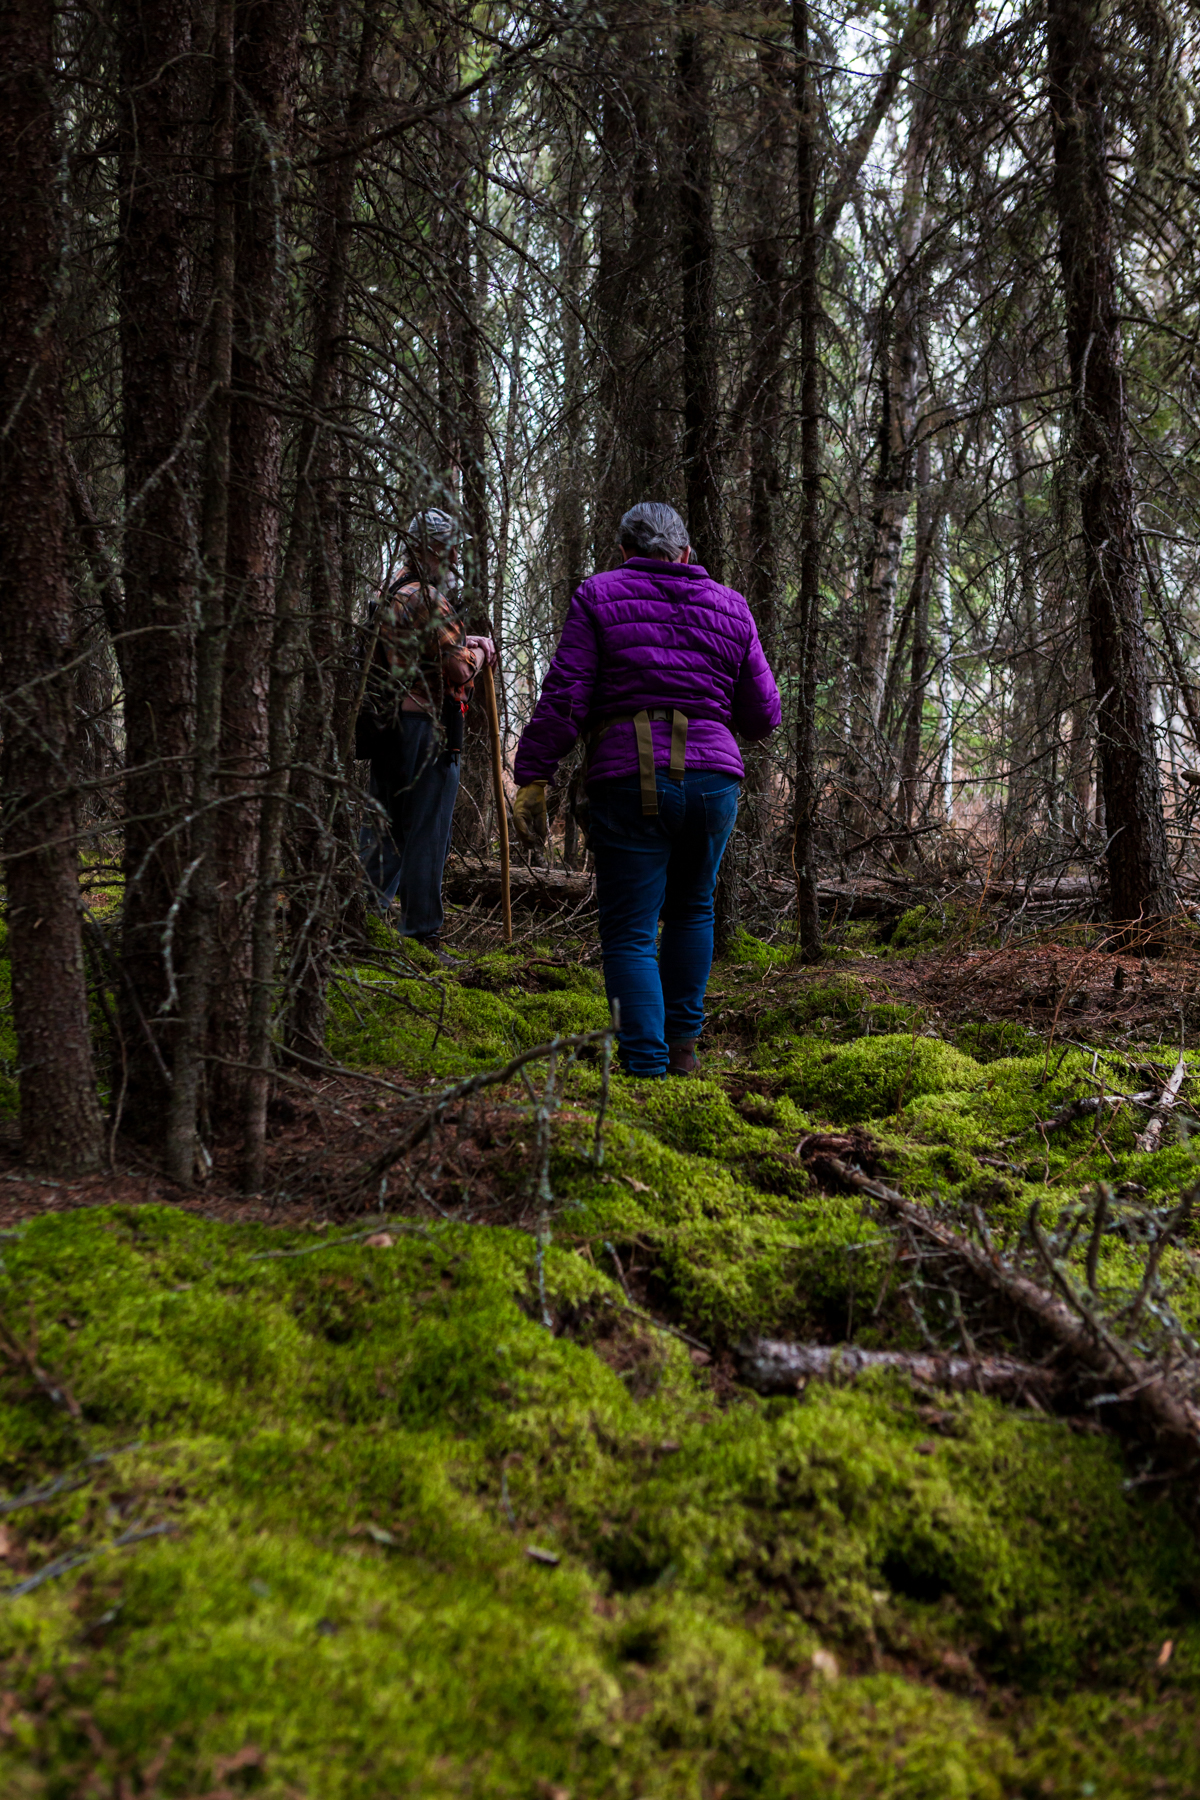 man and women off-trail hiking through mossy forest